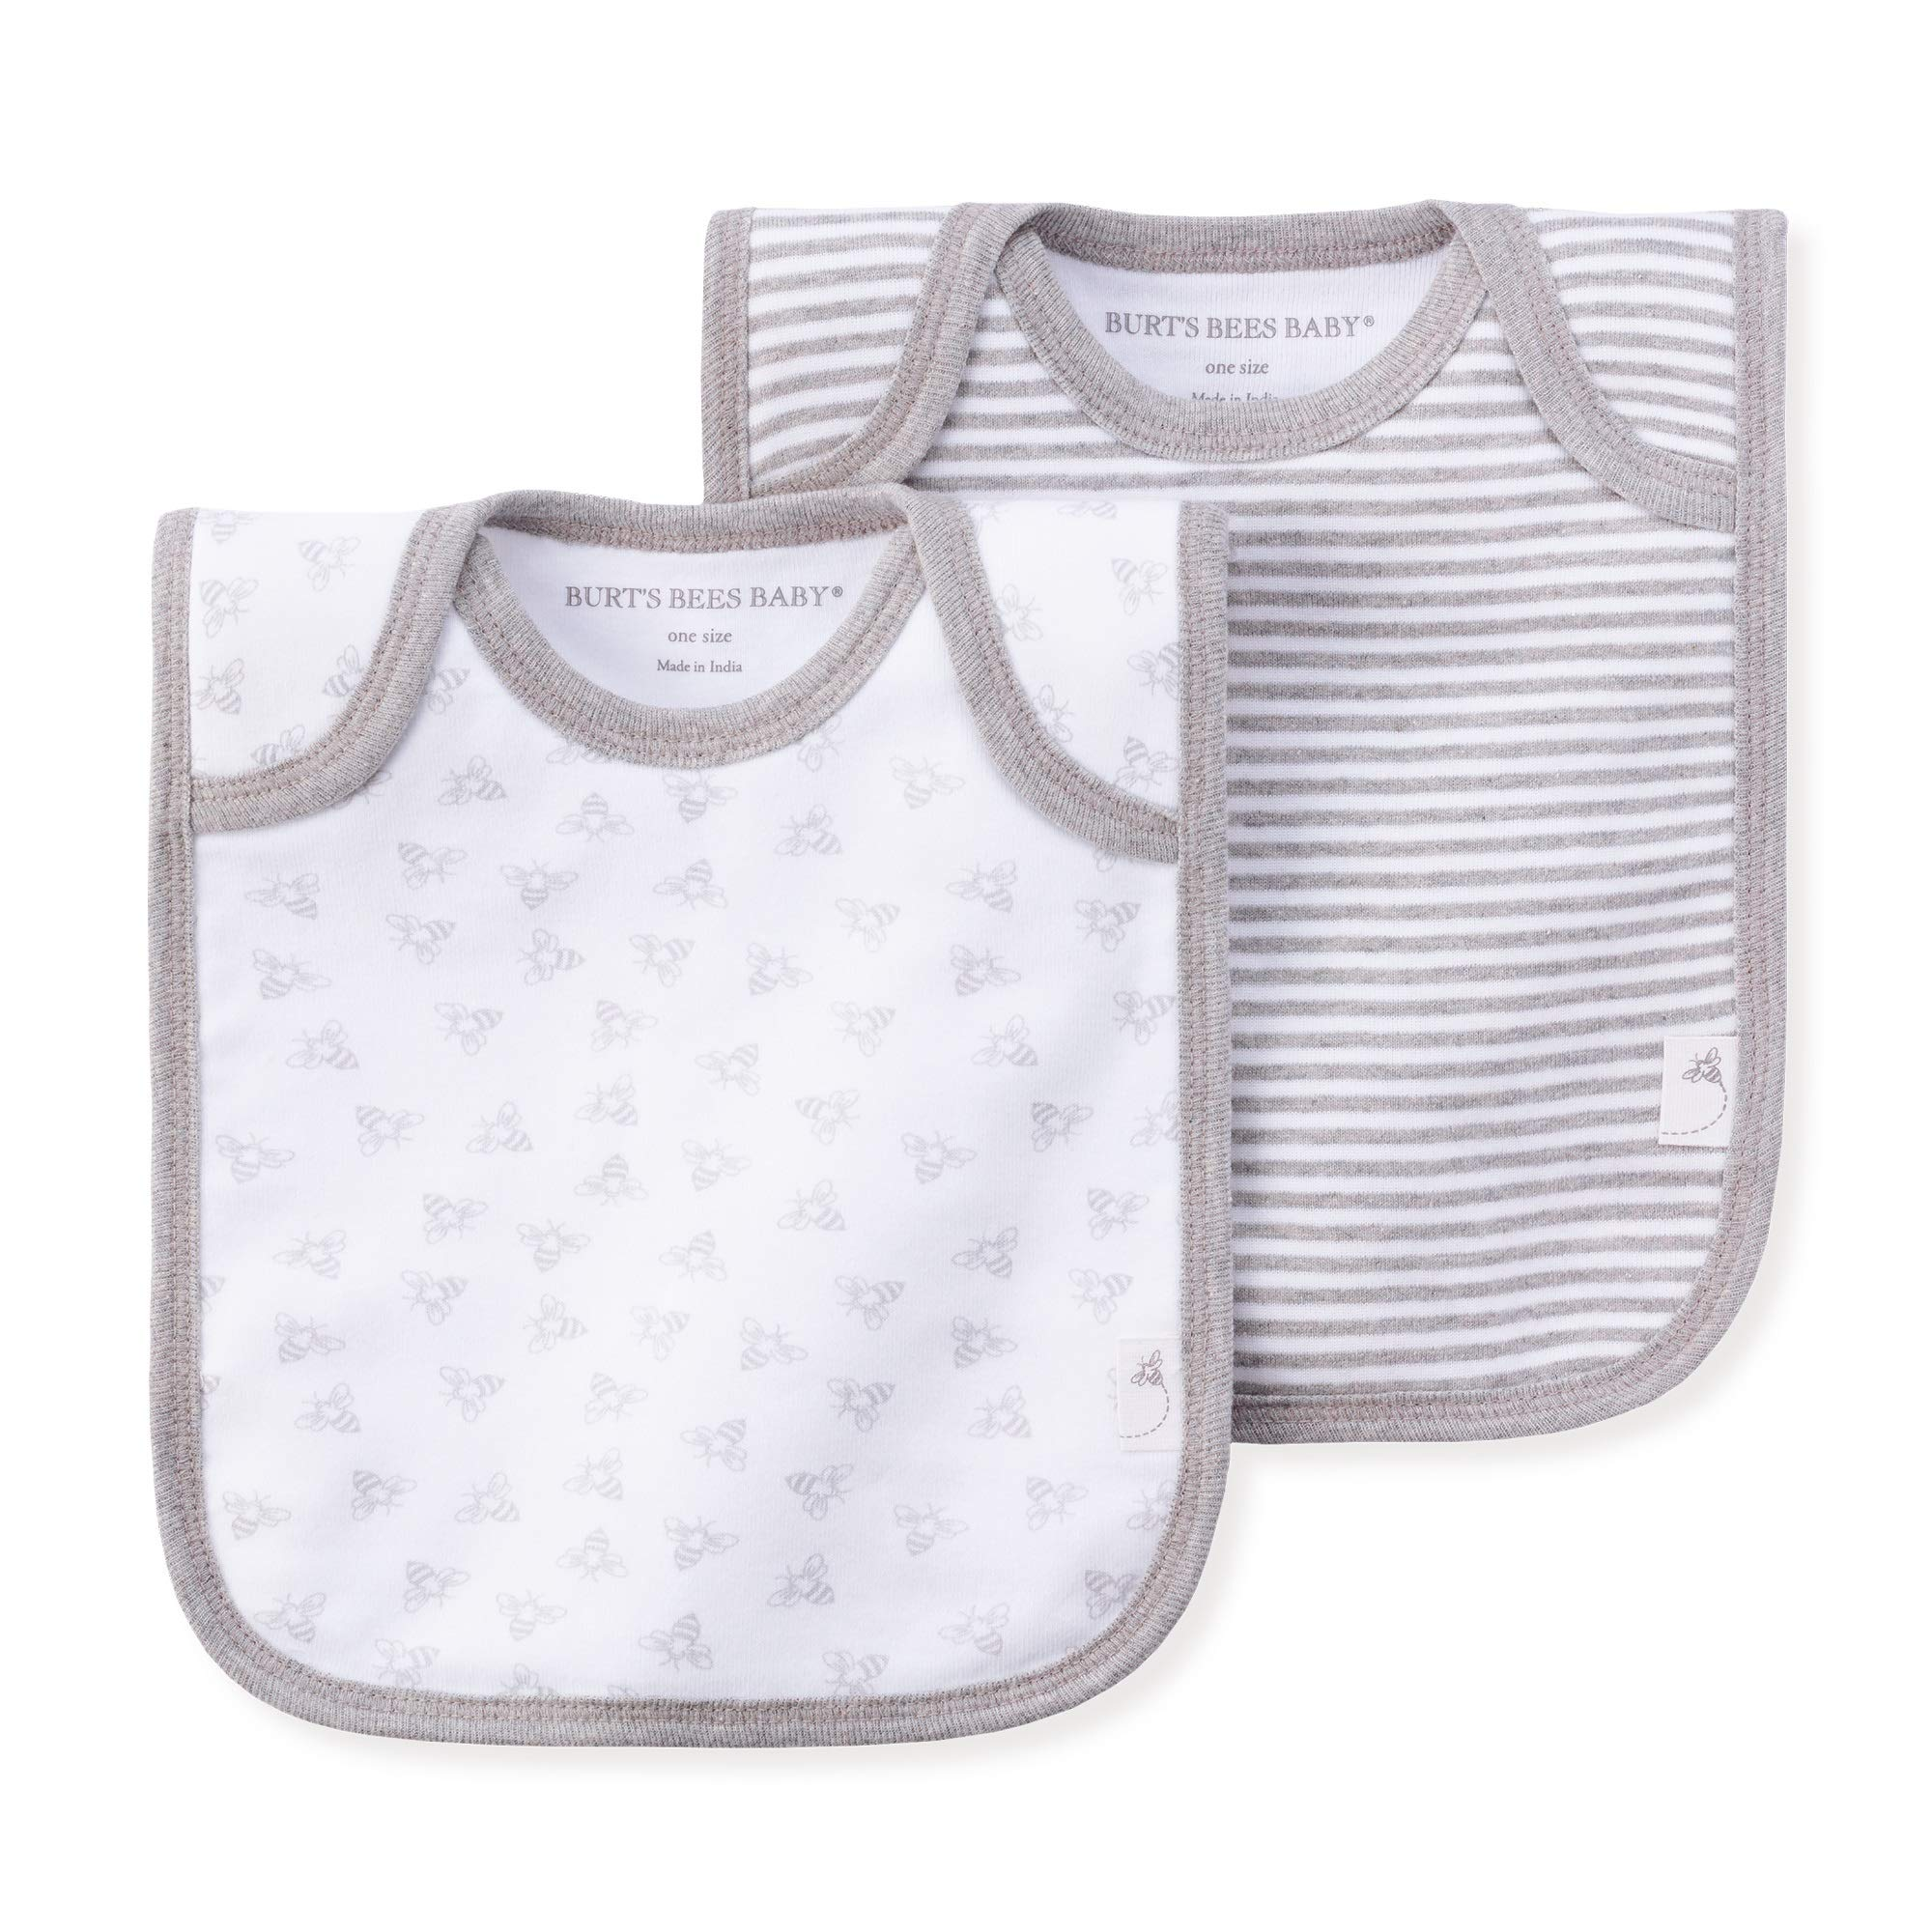 4-Pack Lap-Shoulder Drool Cloths Bibs Burts Bees Baby 100/% Organic Cotton with Absorbent Terry Towel Backing Heather Grey